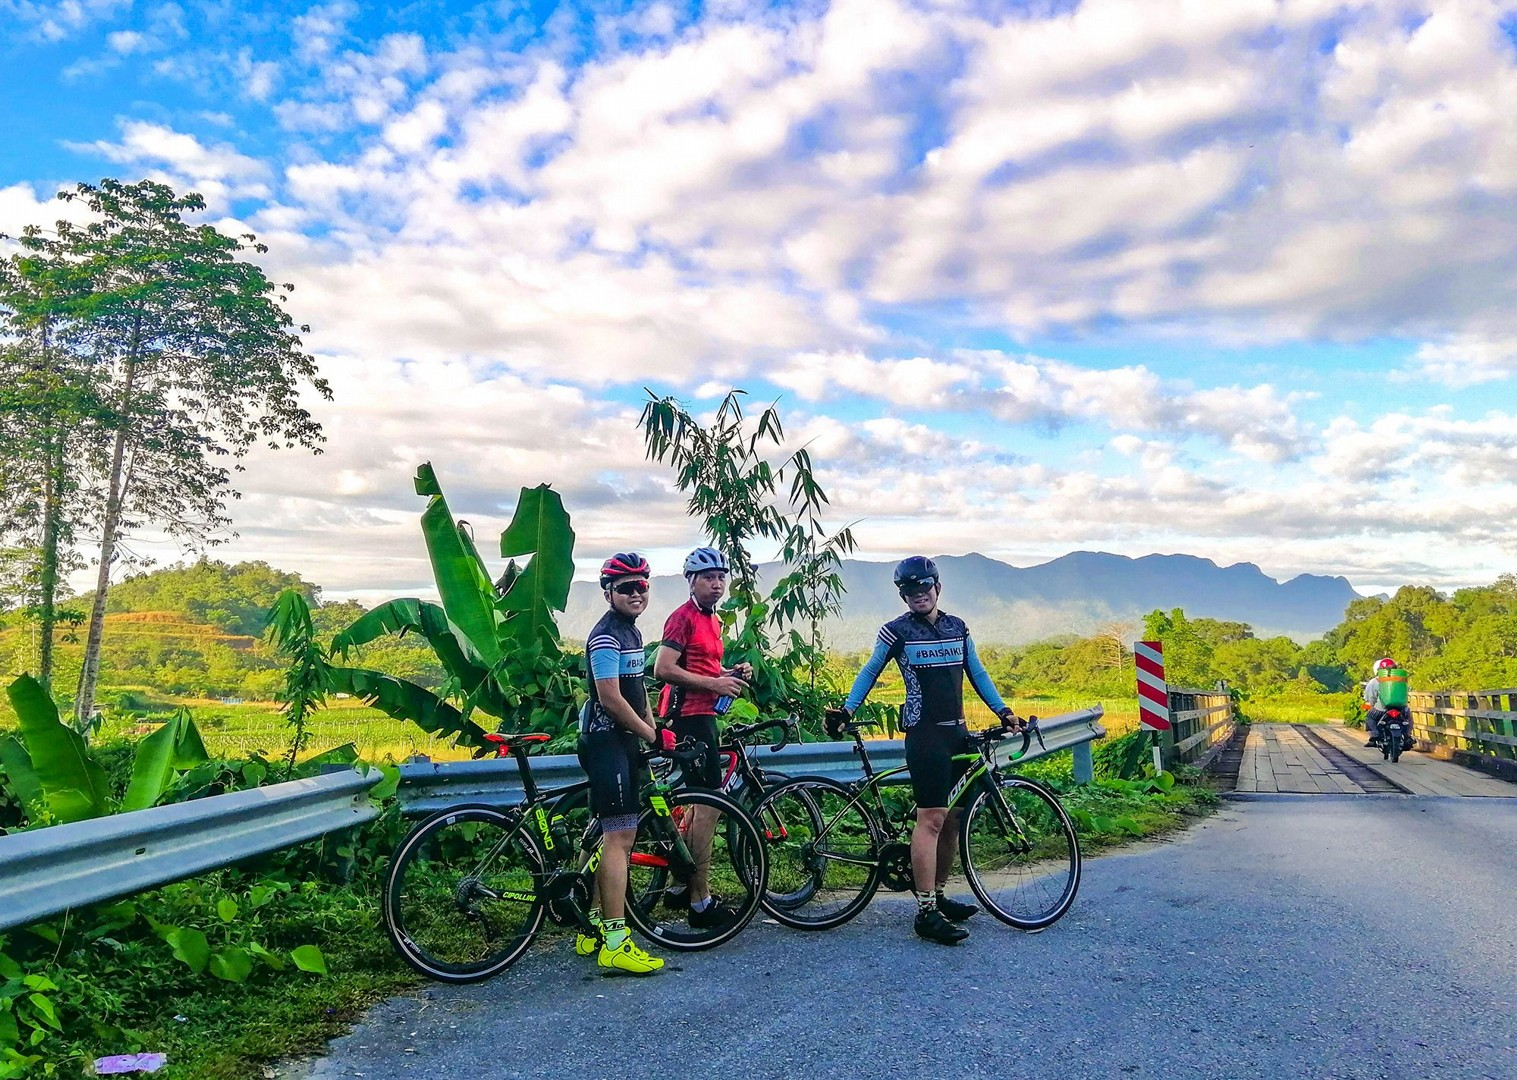 guided-holiday-cycling-through-borneo-saddle-skedaddle.jpg - Borneo - Sarawak to Sabah - Guided Road Cycling Holiday - Road Cycling